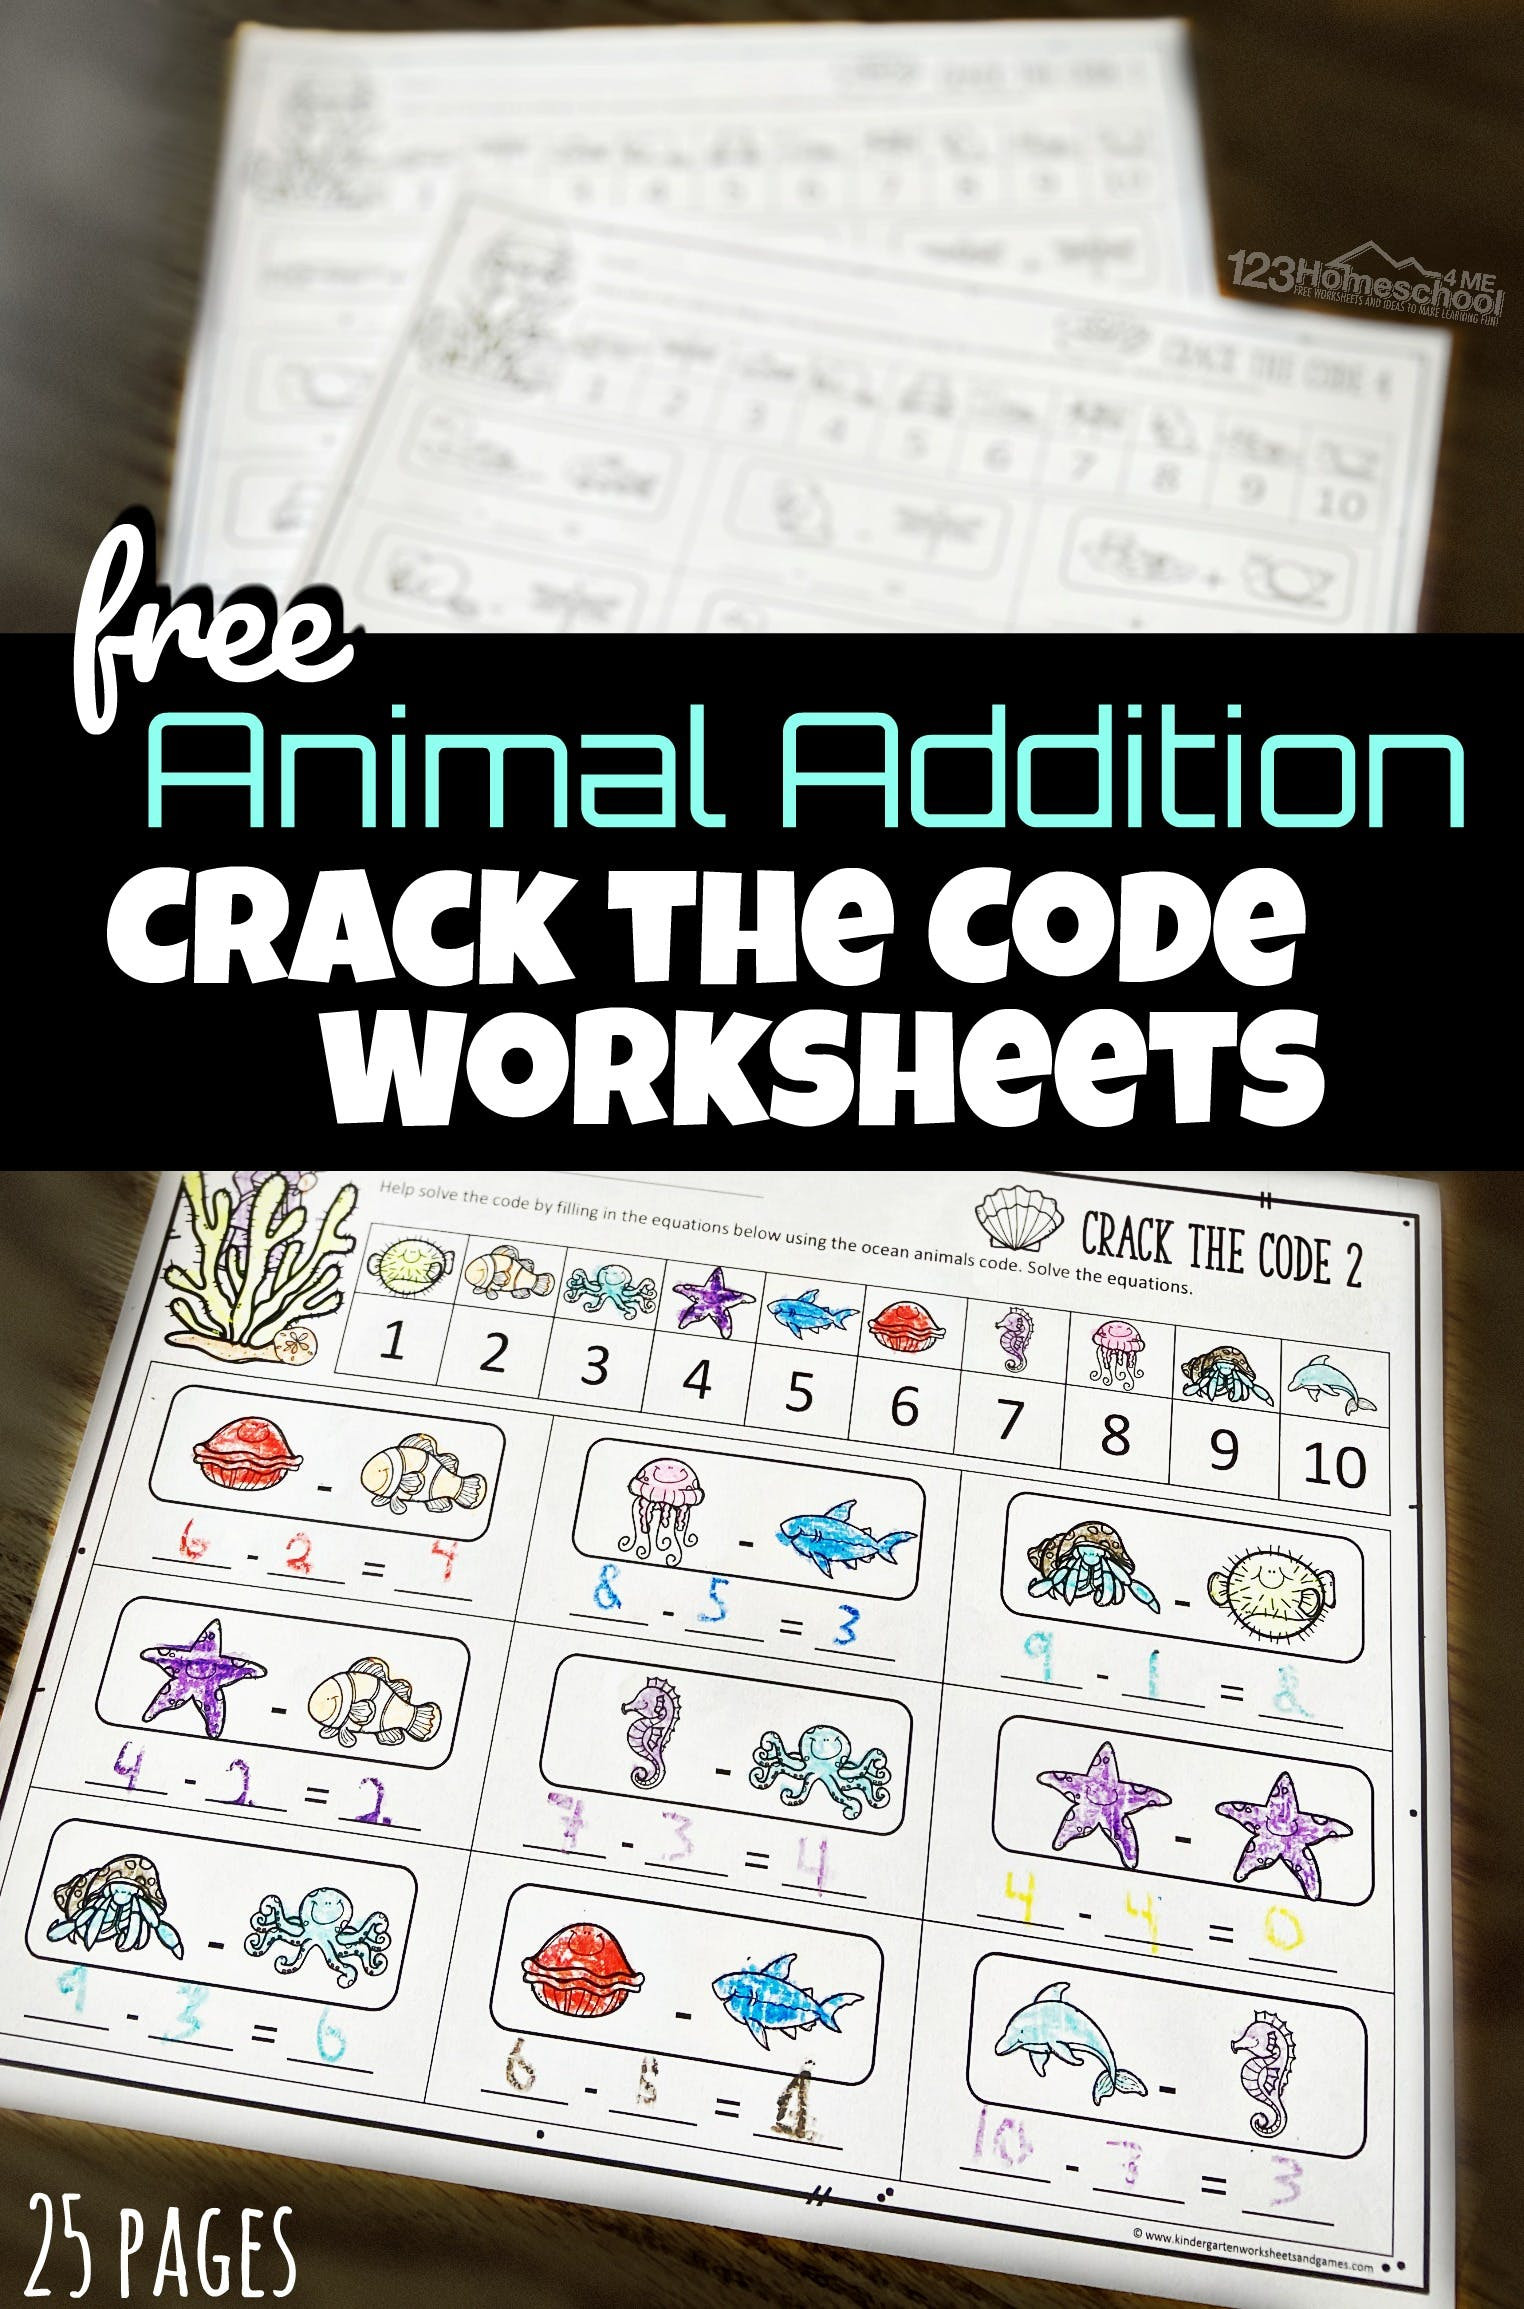 Crack the Code Math Worksheets Crack the Code Math Worksheets